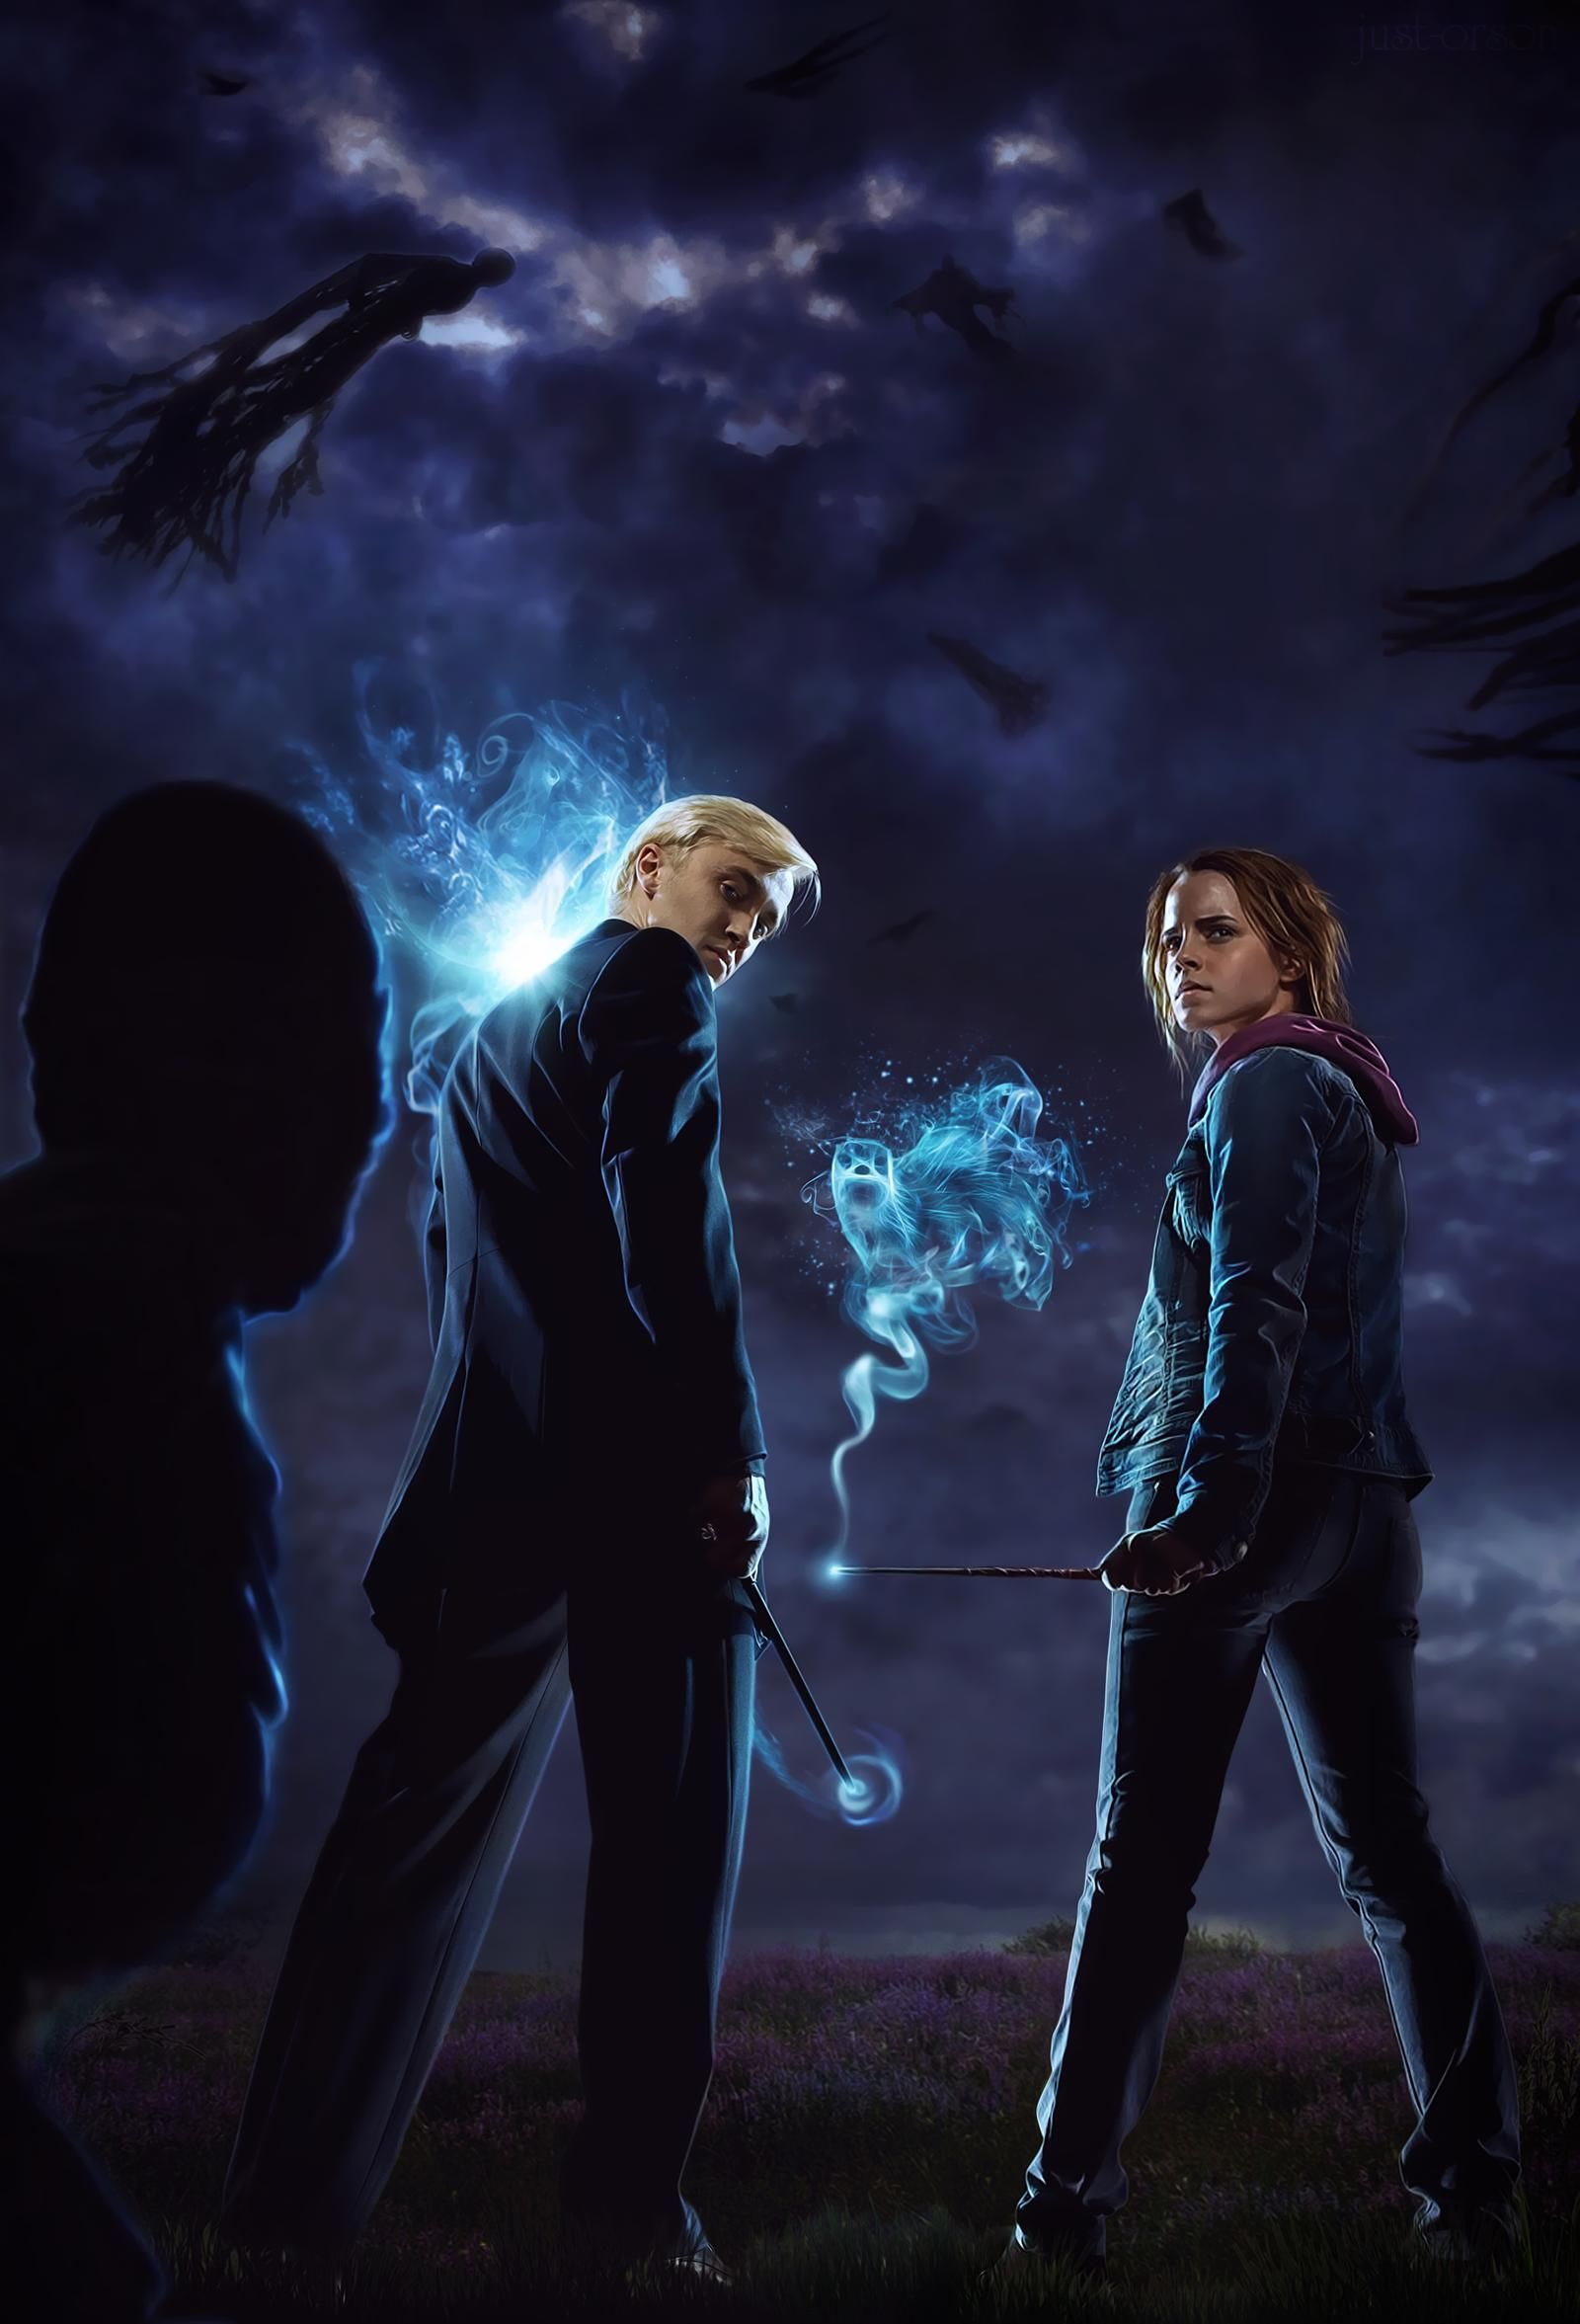 Expecto Patronum By Just Orson On Deviantart Harry Potter Draco Malfoy Harry Potter Wallpaper Harry Potter Pictures